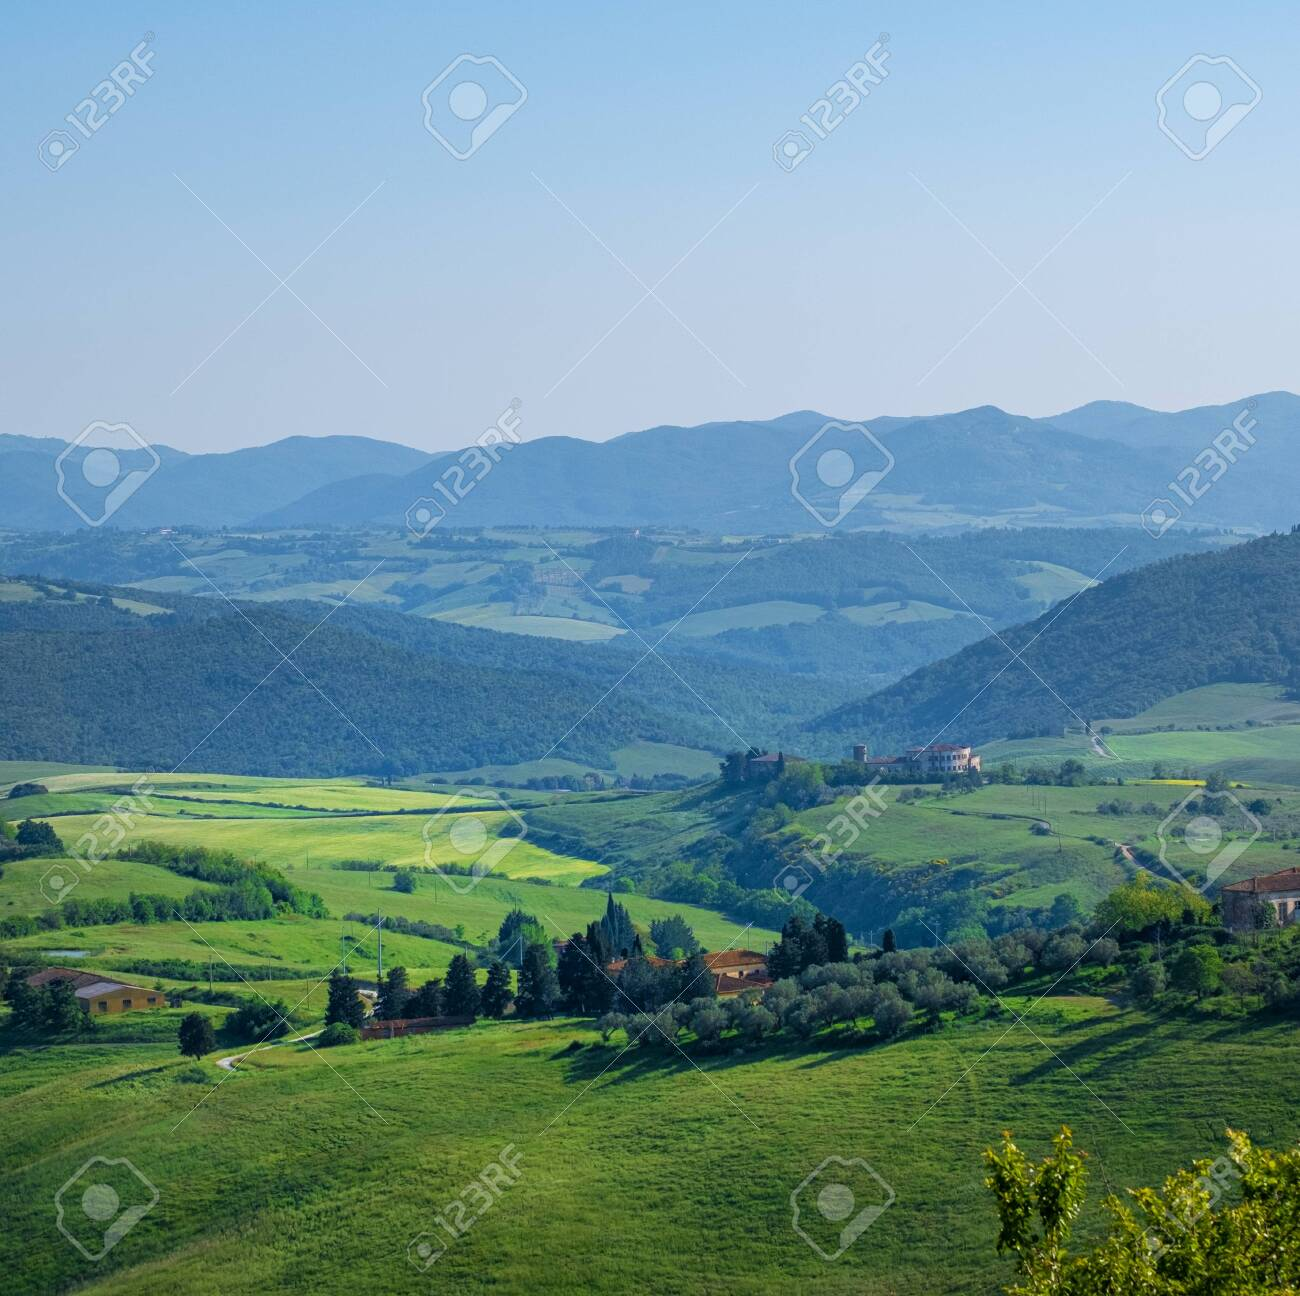 Typical Tuscany landscape with hills, green trees and houses, Italy. - 126888894